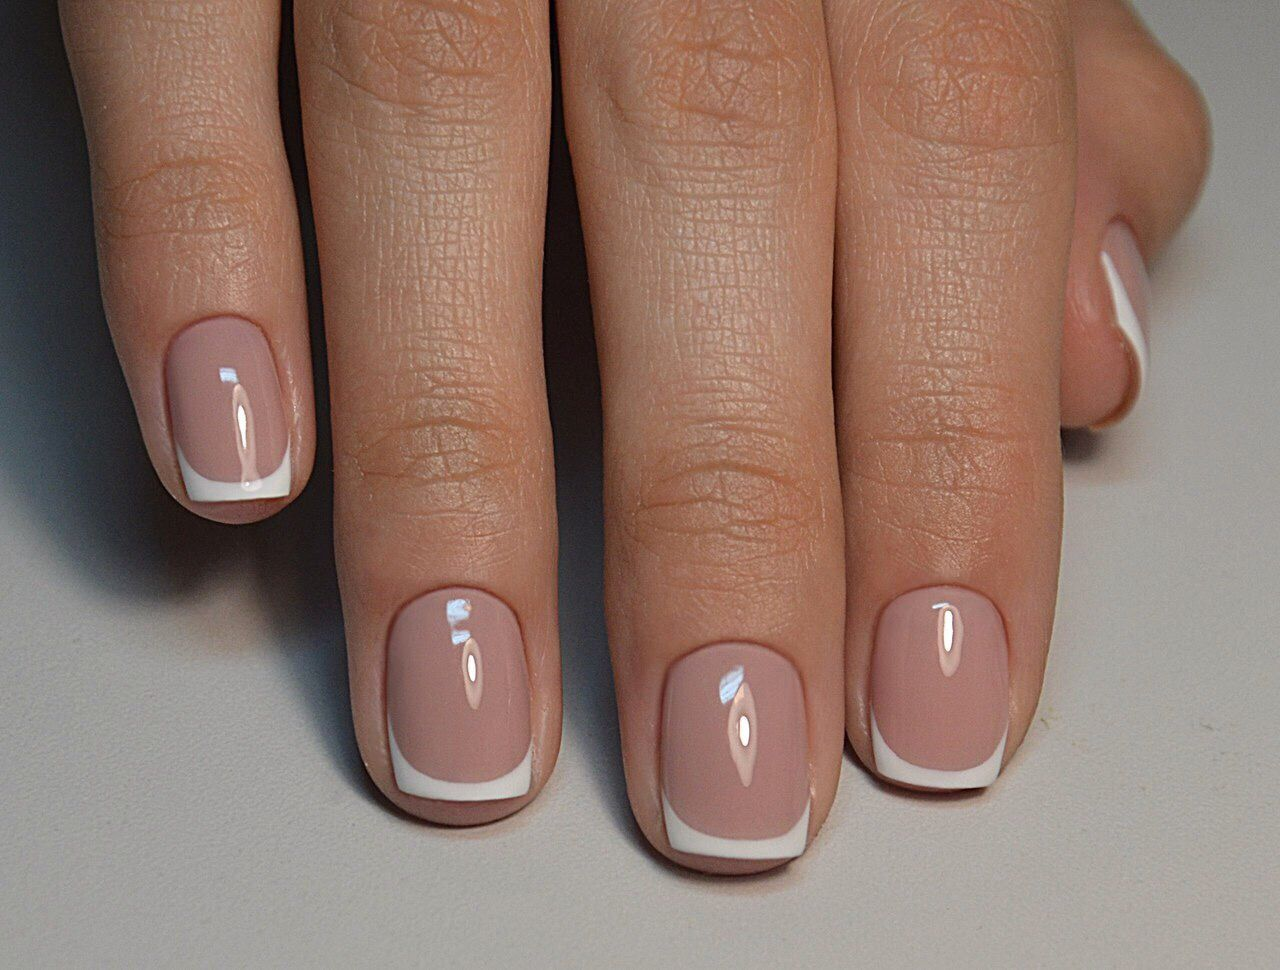 Pin by Natasha on Ногти | Pinterest | Manicure, French nails and ...